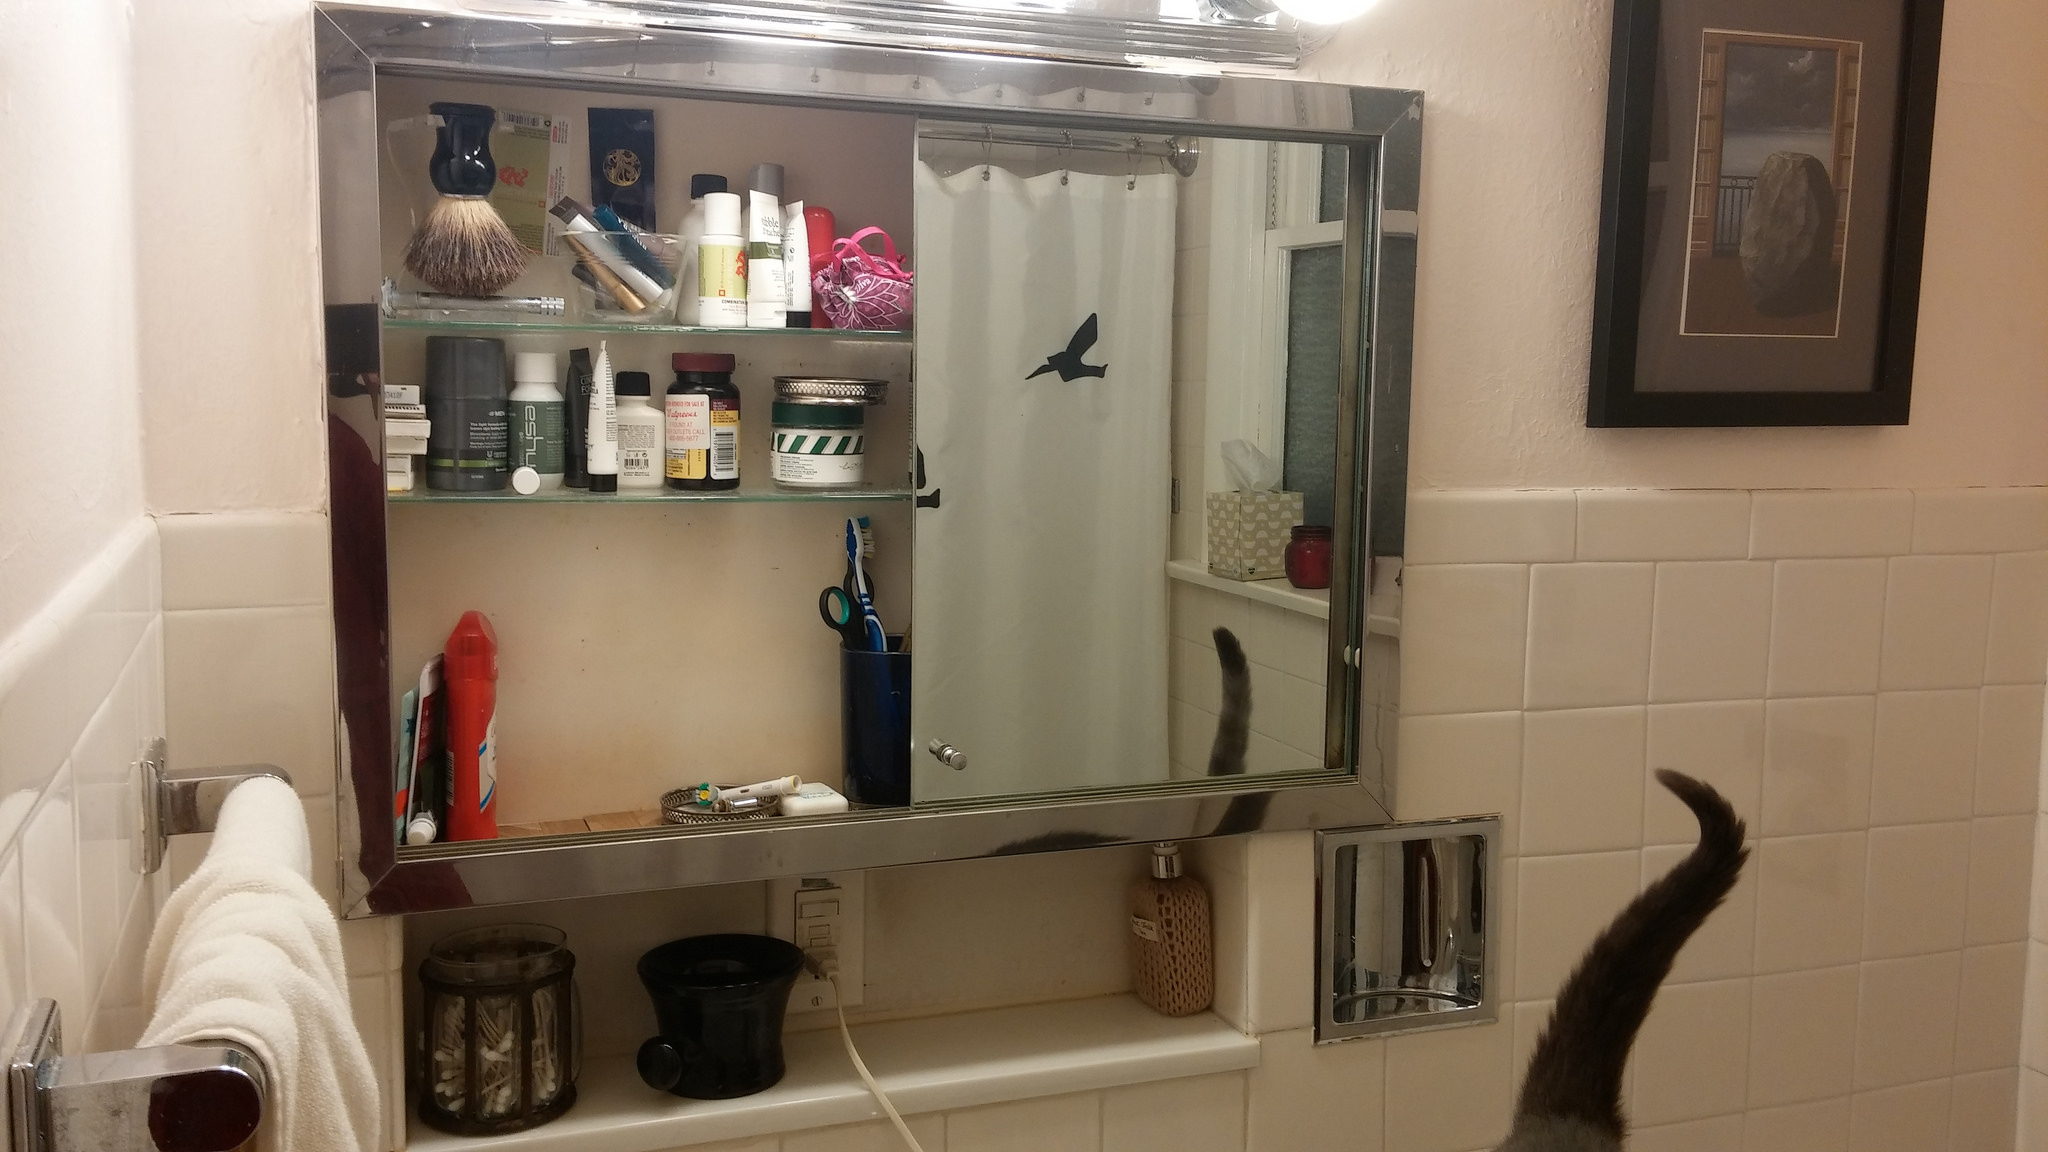 With only one door, this is as good as the medicine cabinet gets.